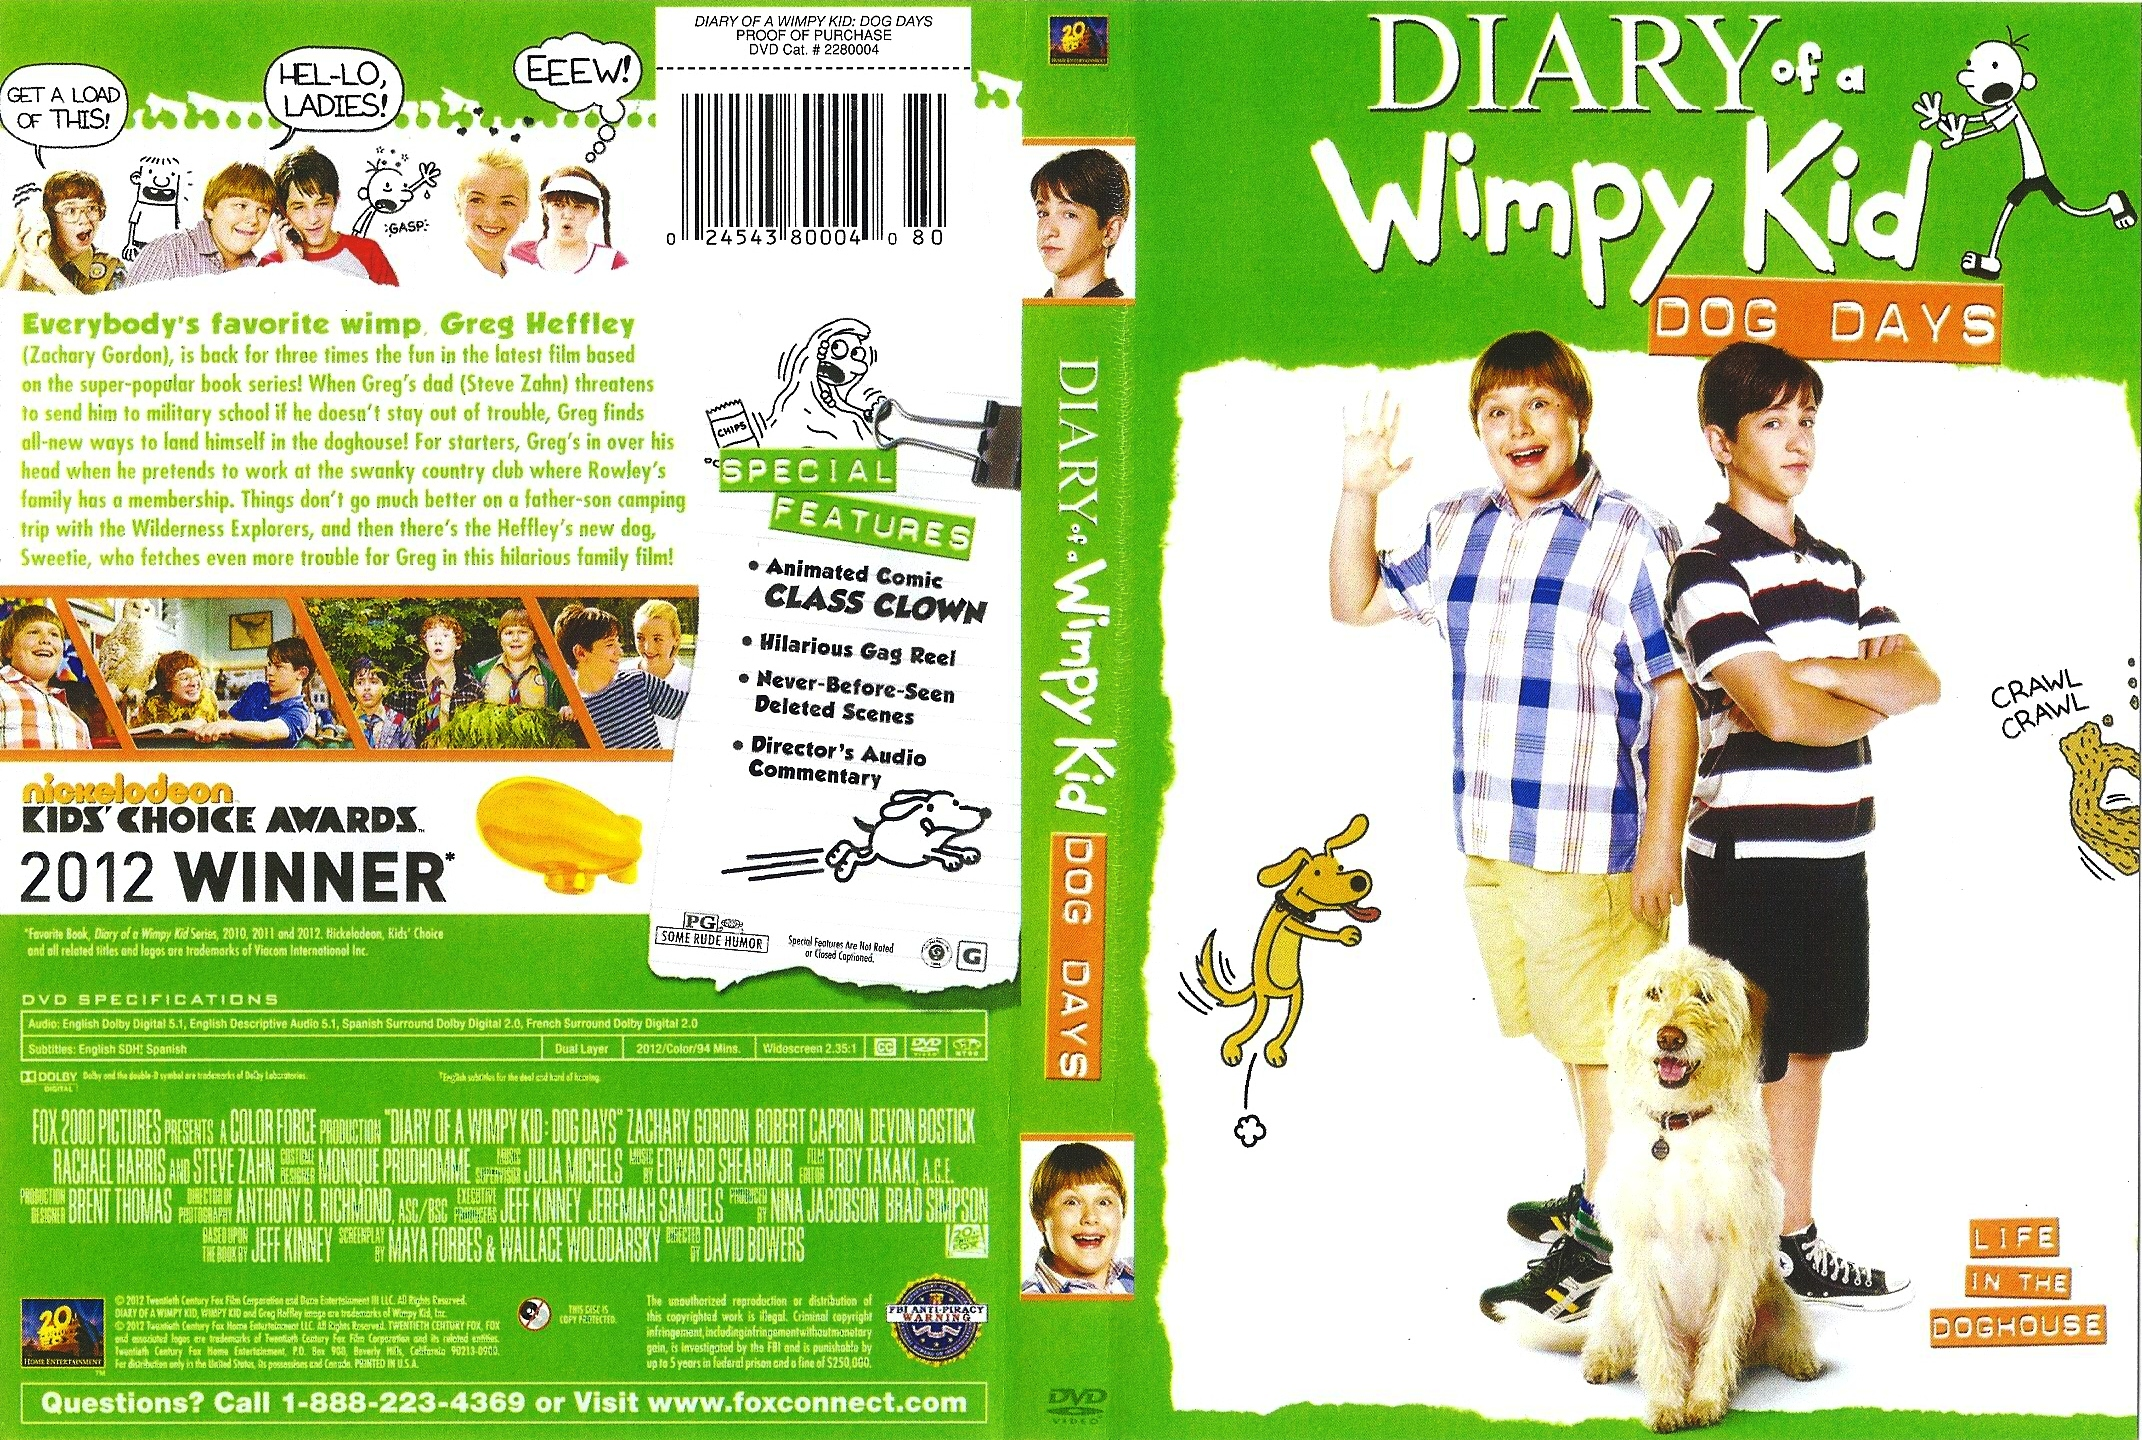 Most viewed Diary Of A Wimpy Kid Dog Days wallpapers 4K Wallpapers 2142x1440